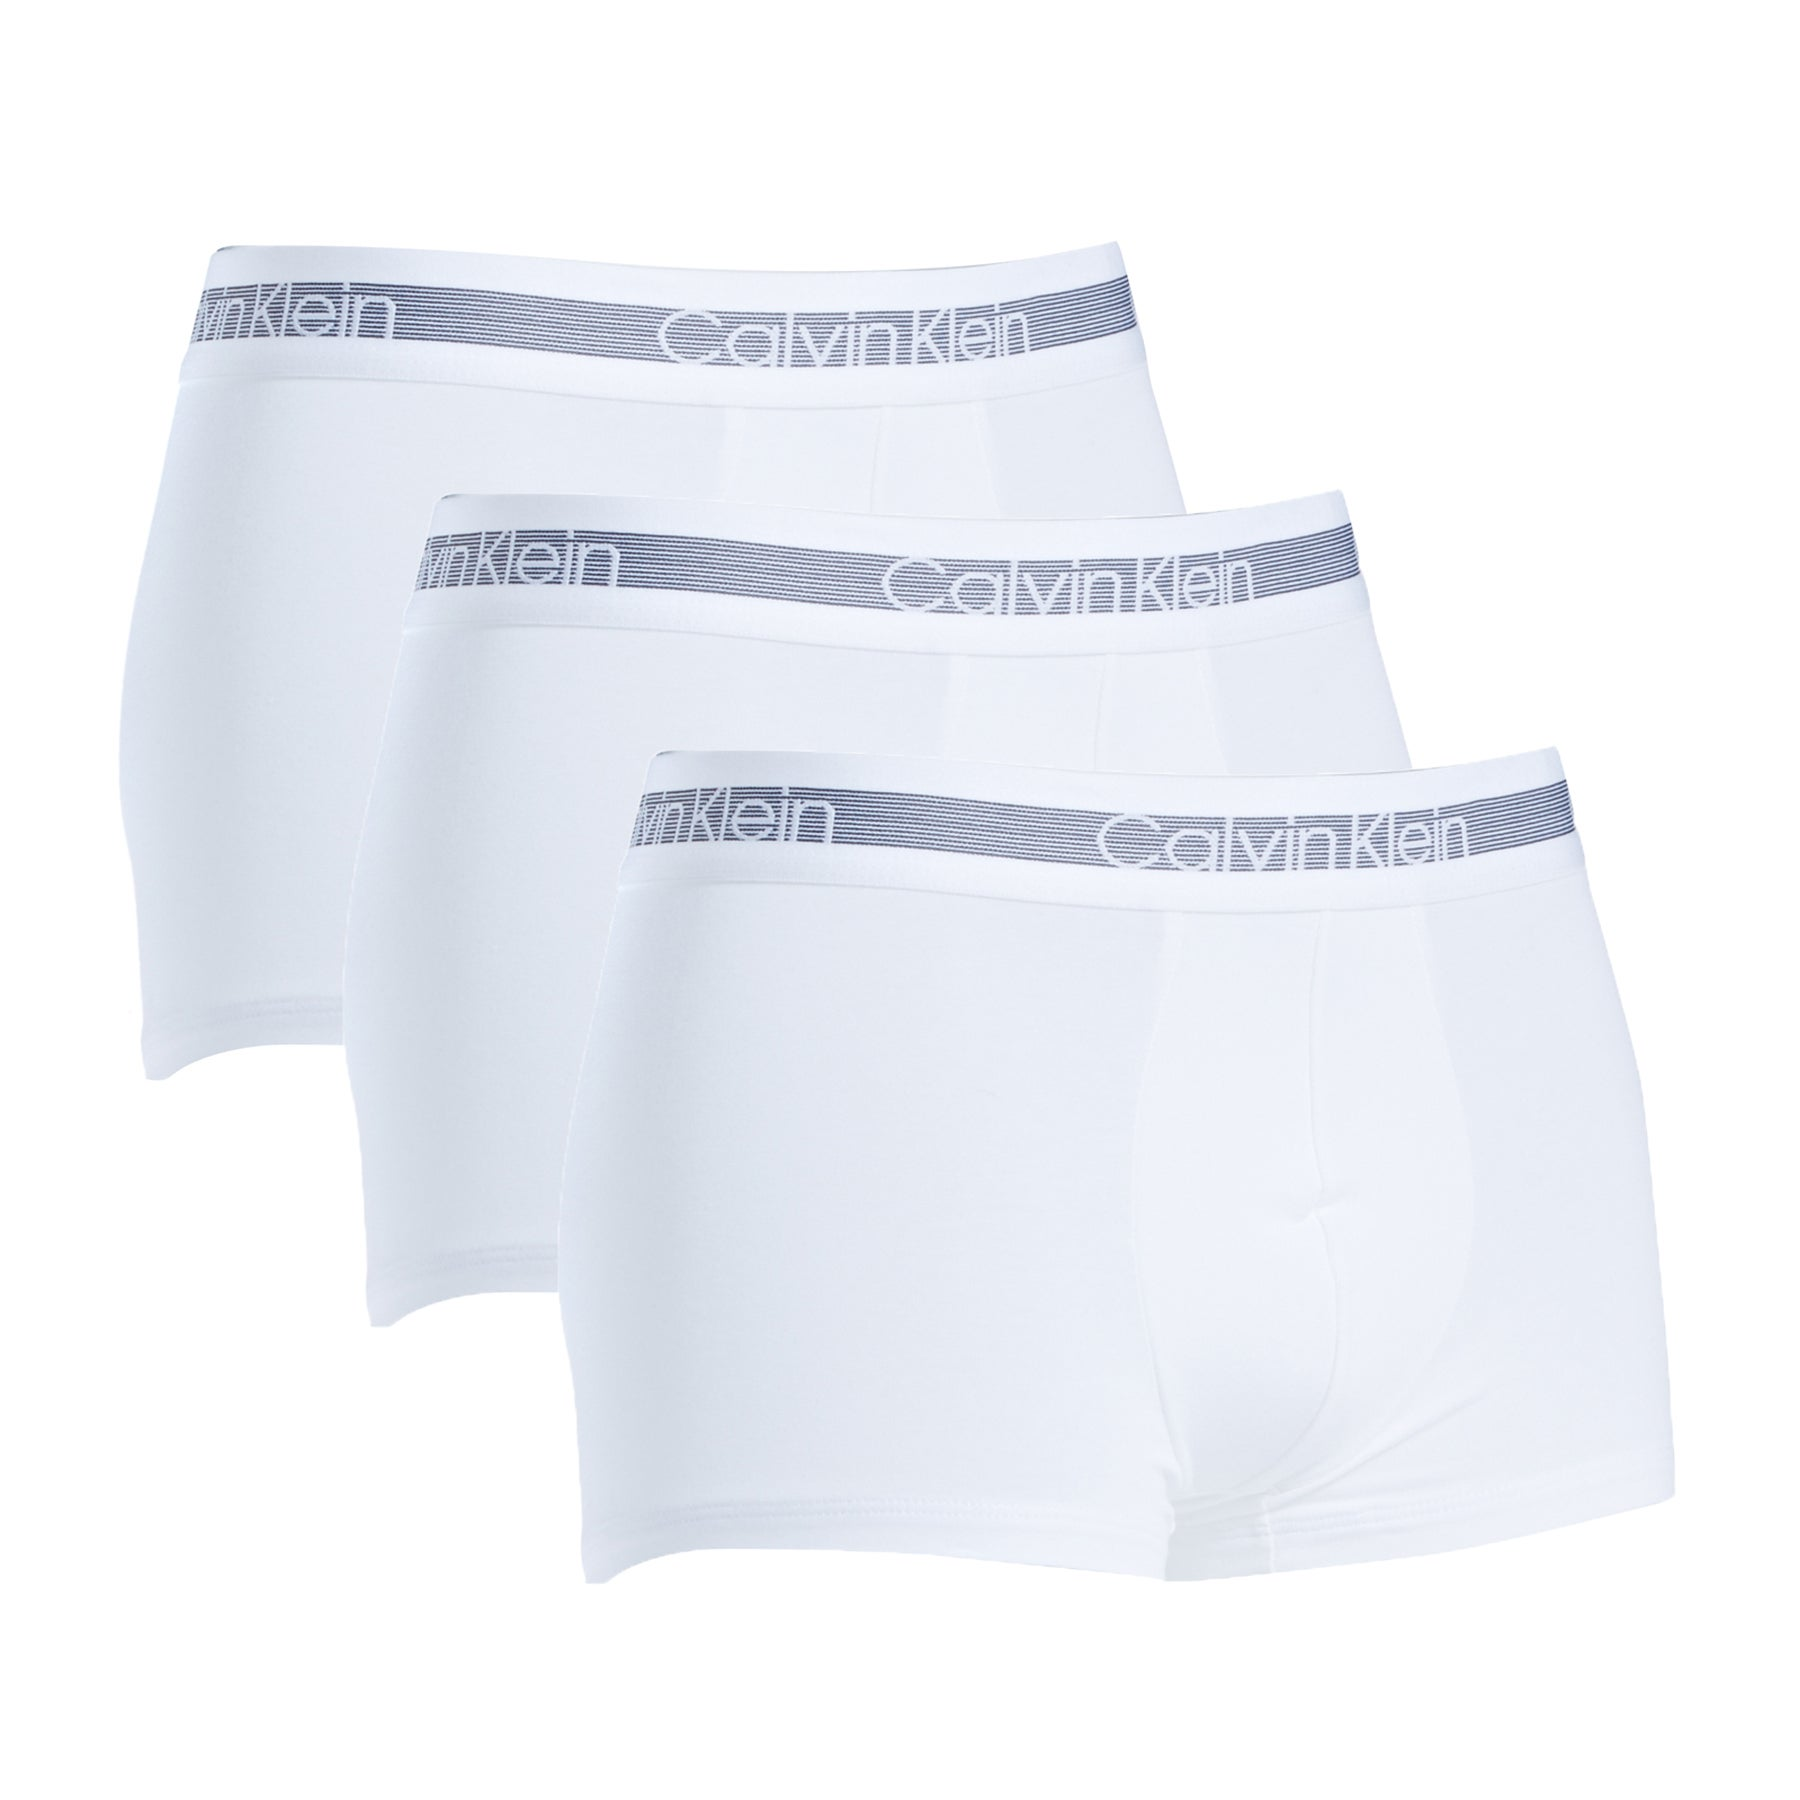 Calvin Klein Cooling Trunk 3pk Boxer Shorts - White